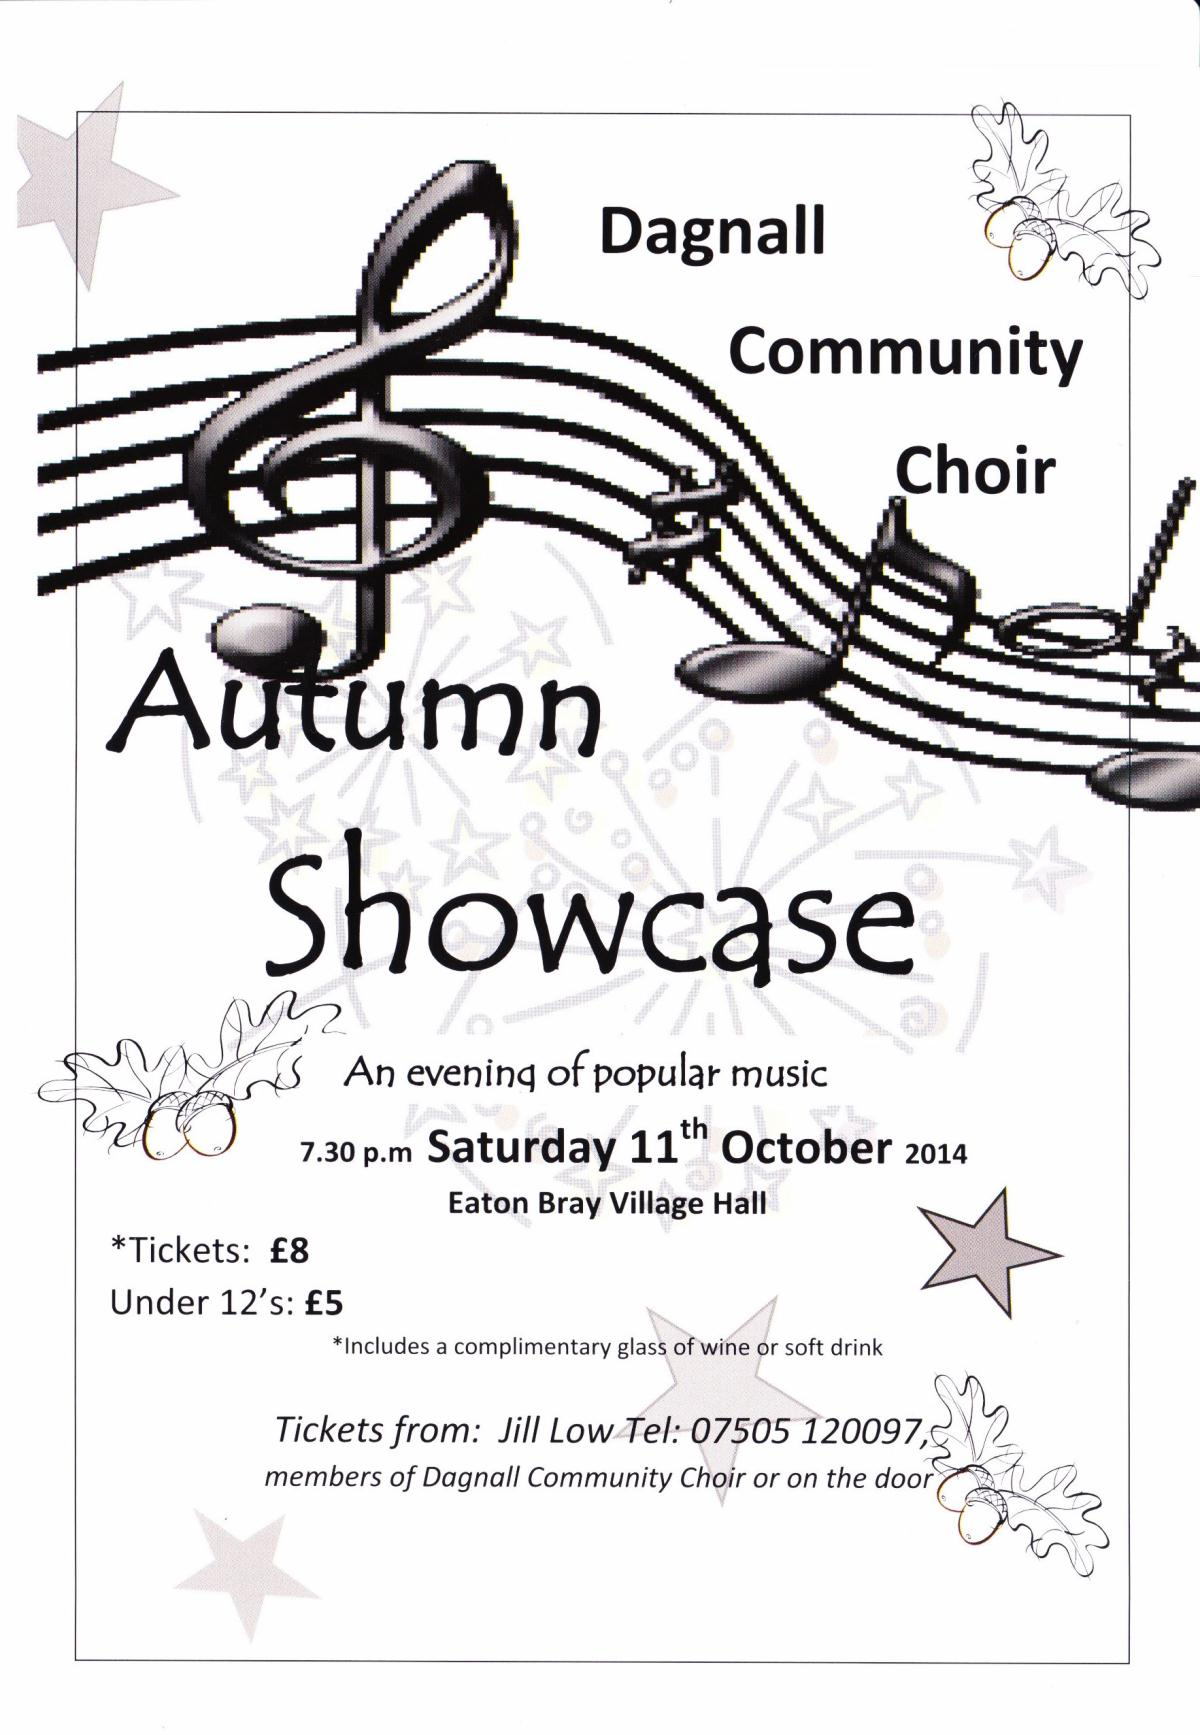 Dagnall Community Choir, 11 Oct 2014